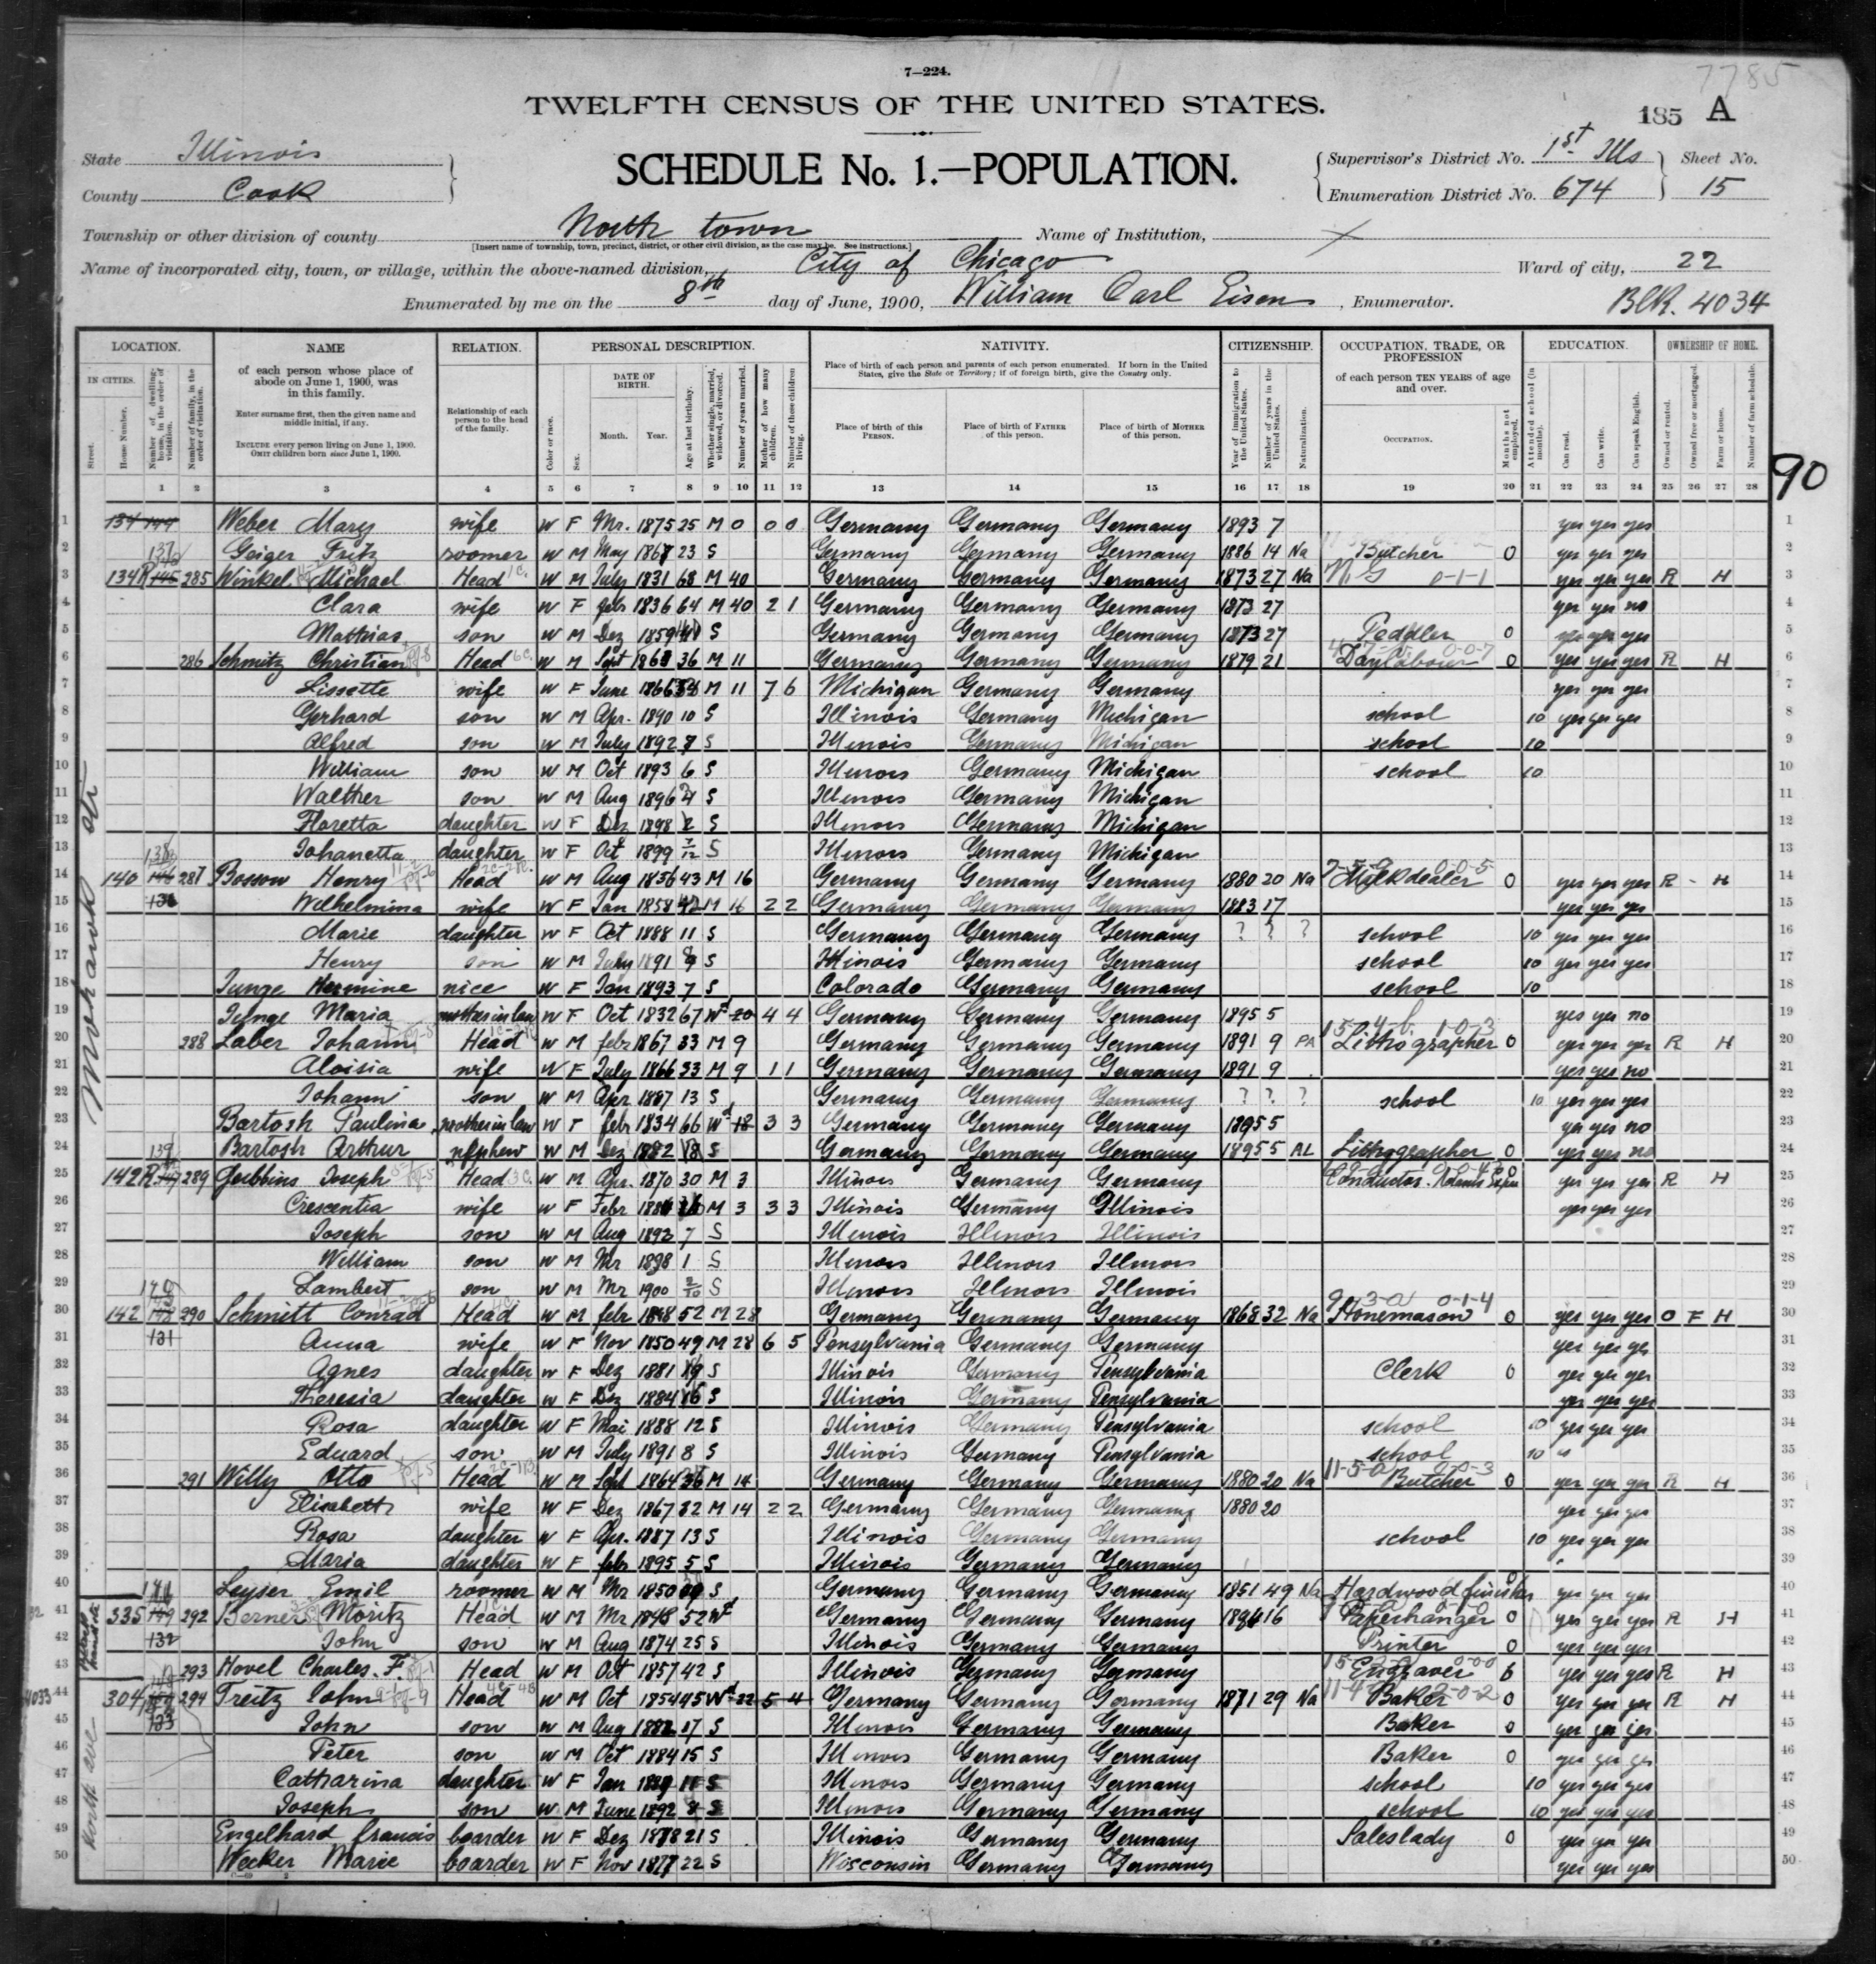 Illinois: COOK County, Enumeration District 674, Sheet No. 15A